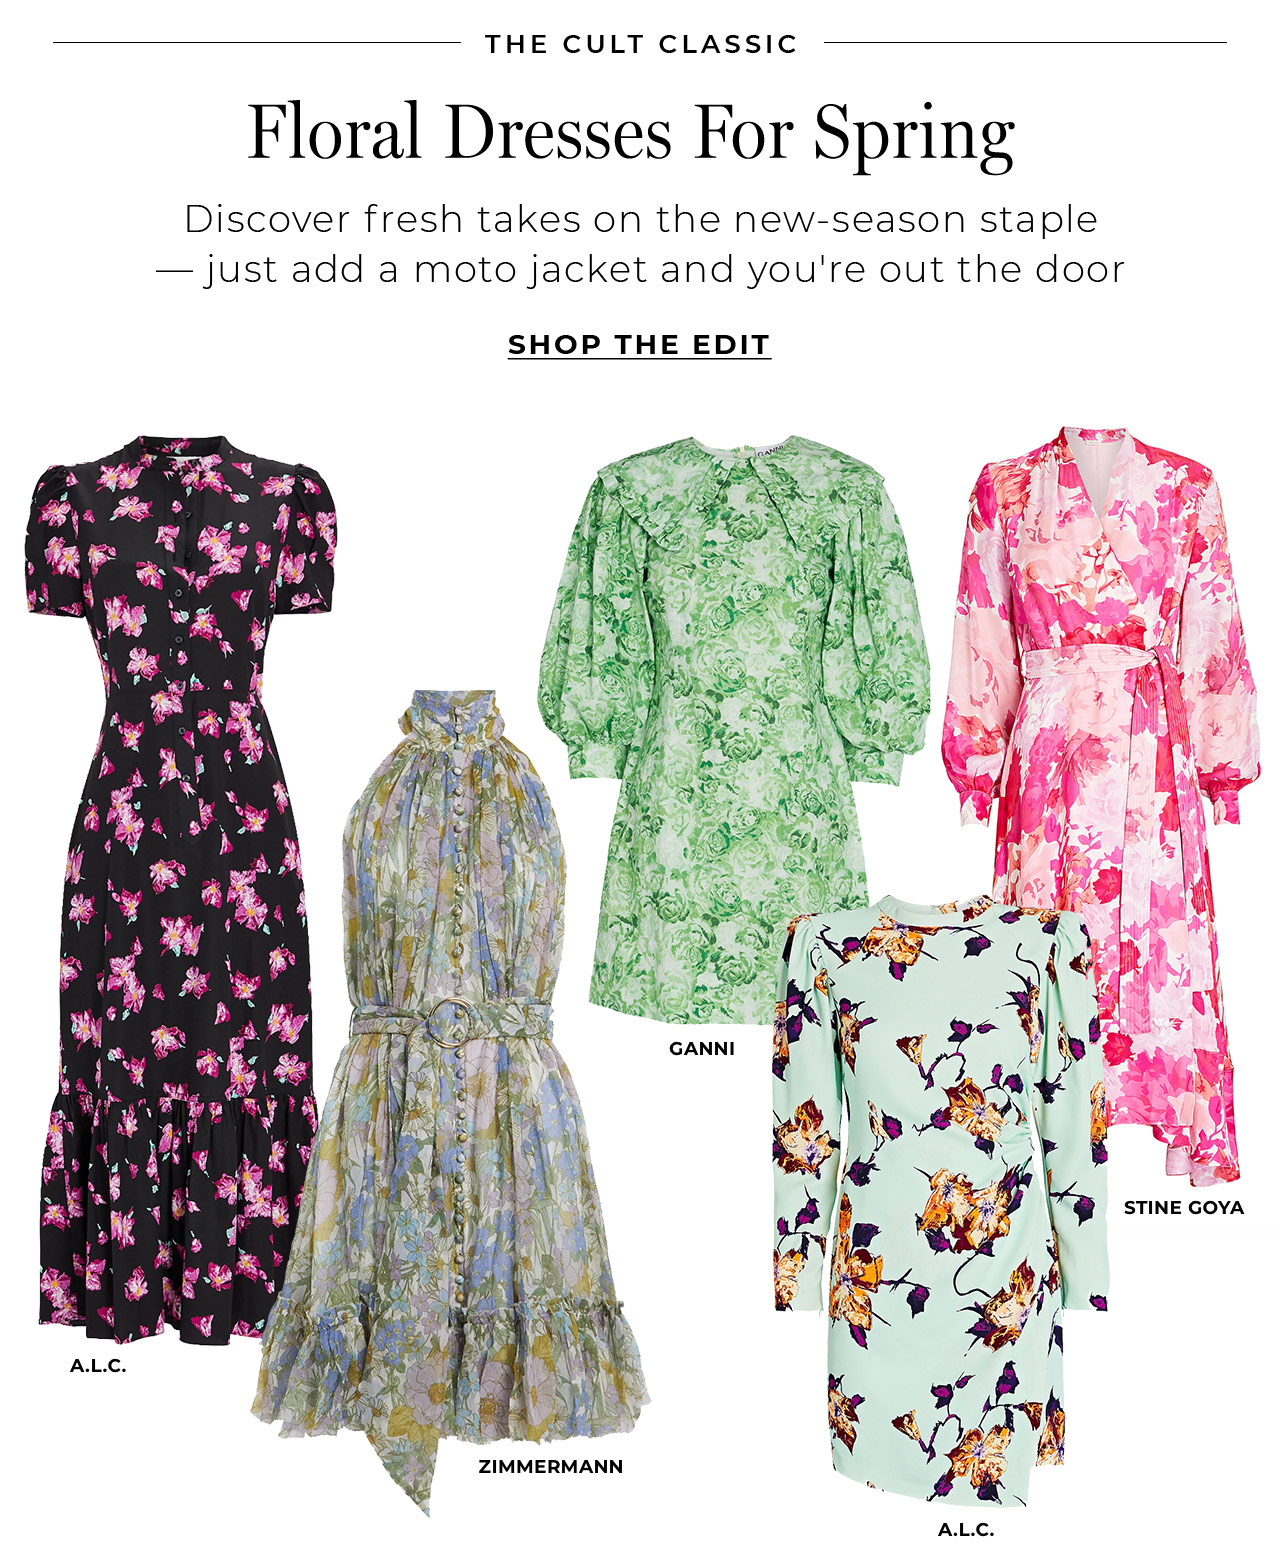 Discover floral dresses for spring – just add a moto jacket and you're out the door